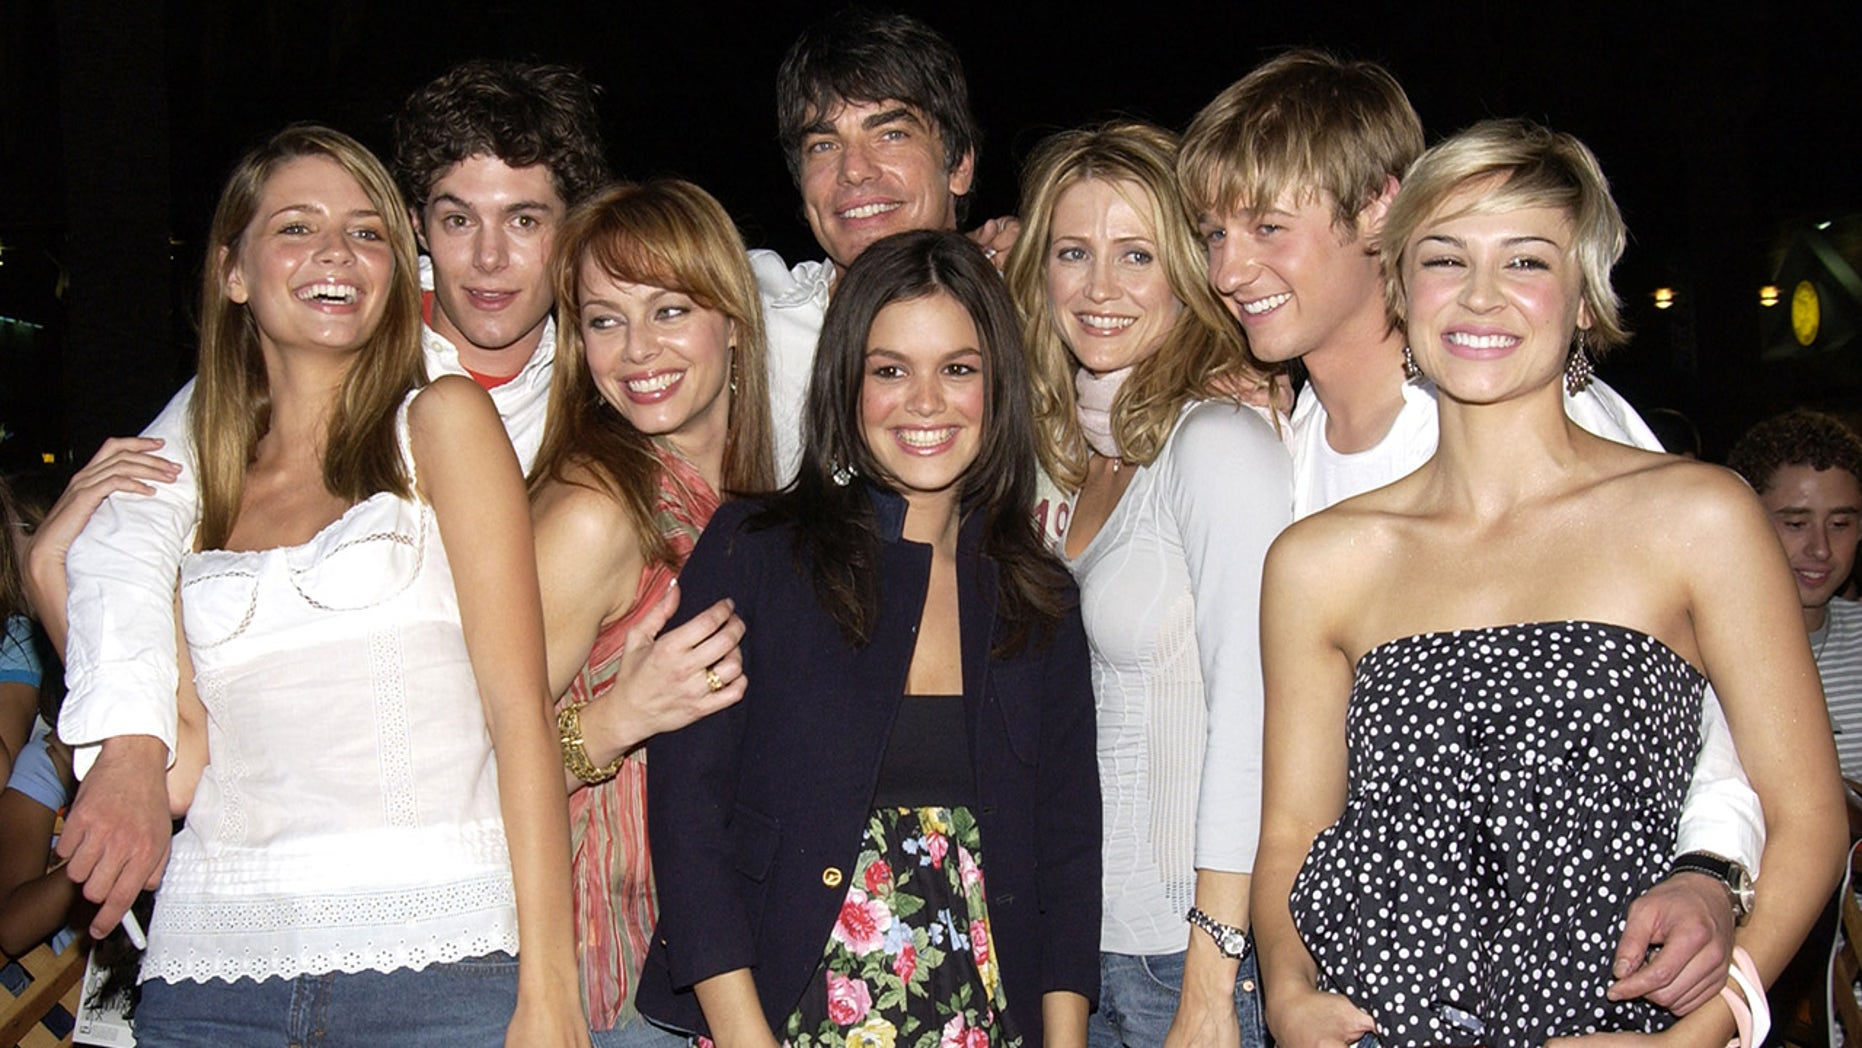 Mischa Barton Accused of Being an alleged 'Nightmare' on the set of 'The O.C.'